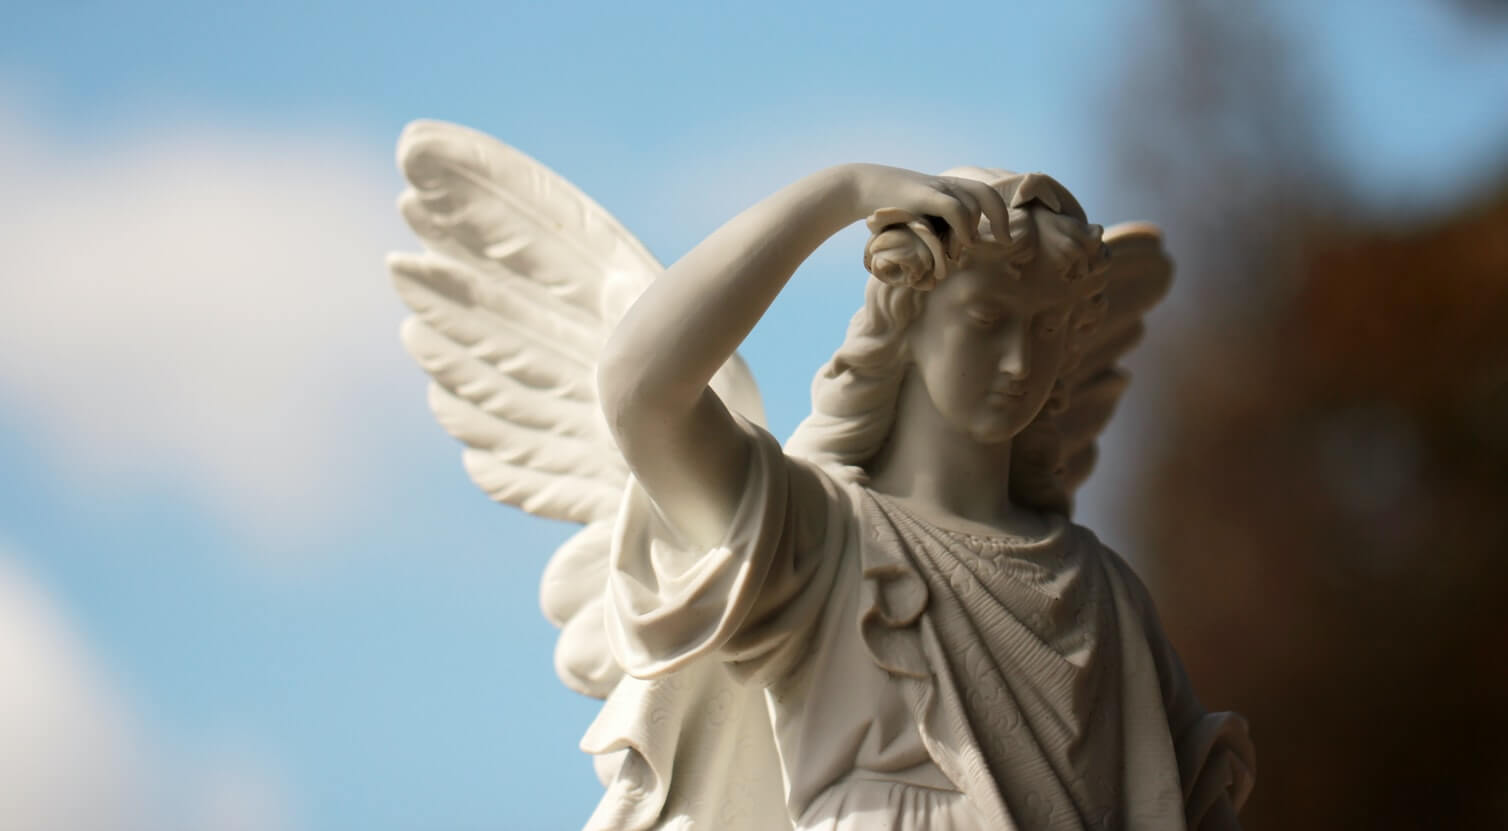 The 7 Stages of Grieving and Their Effects